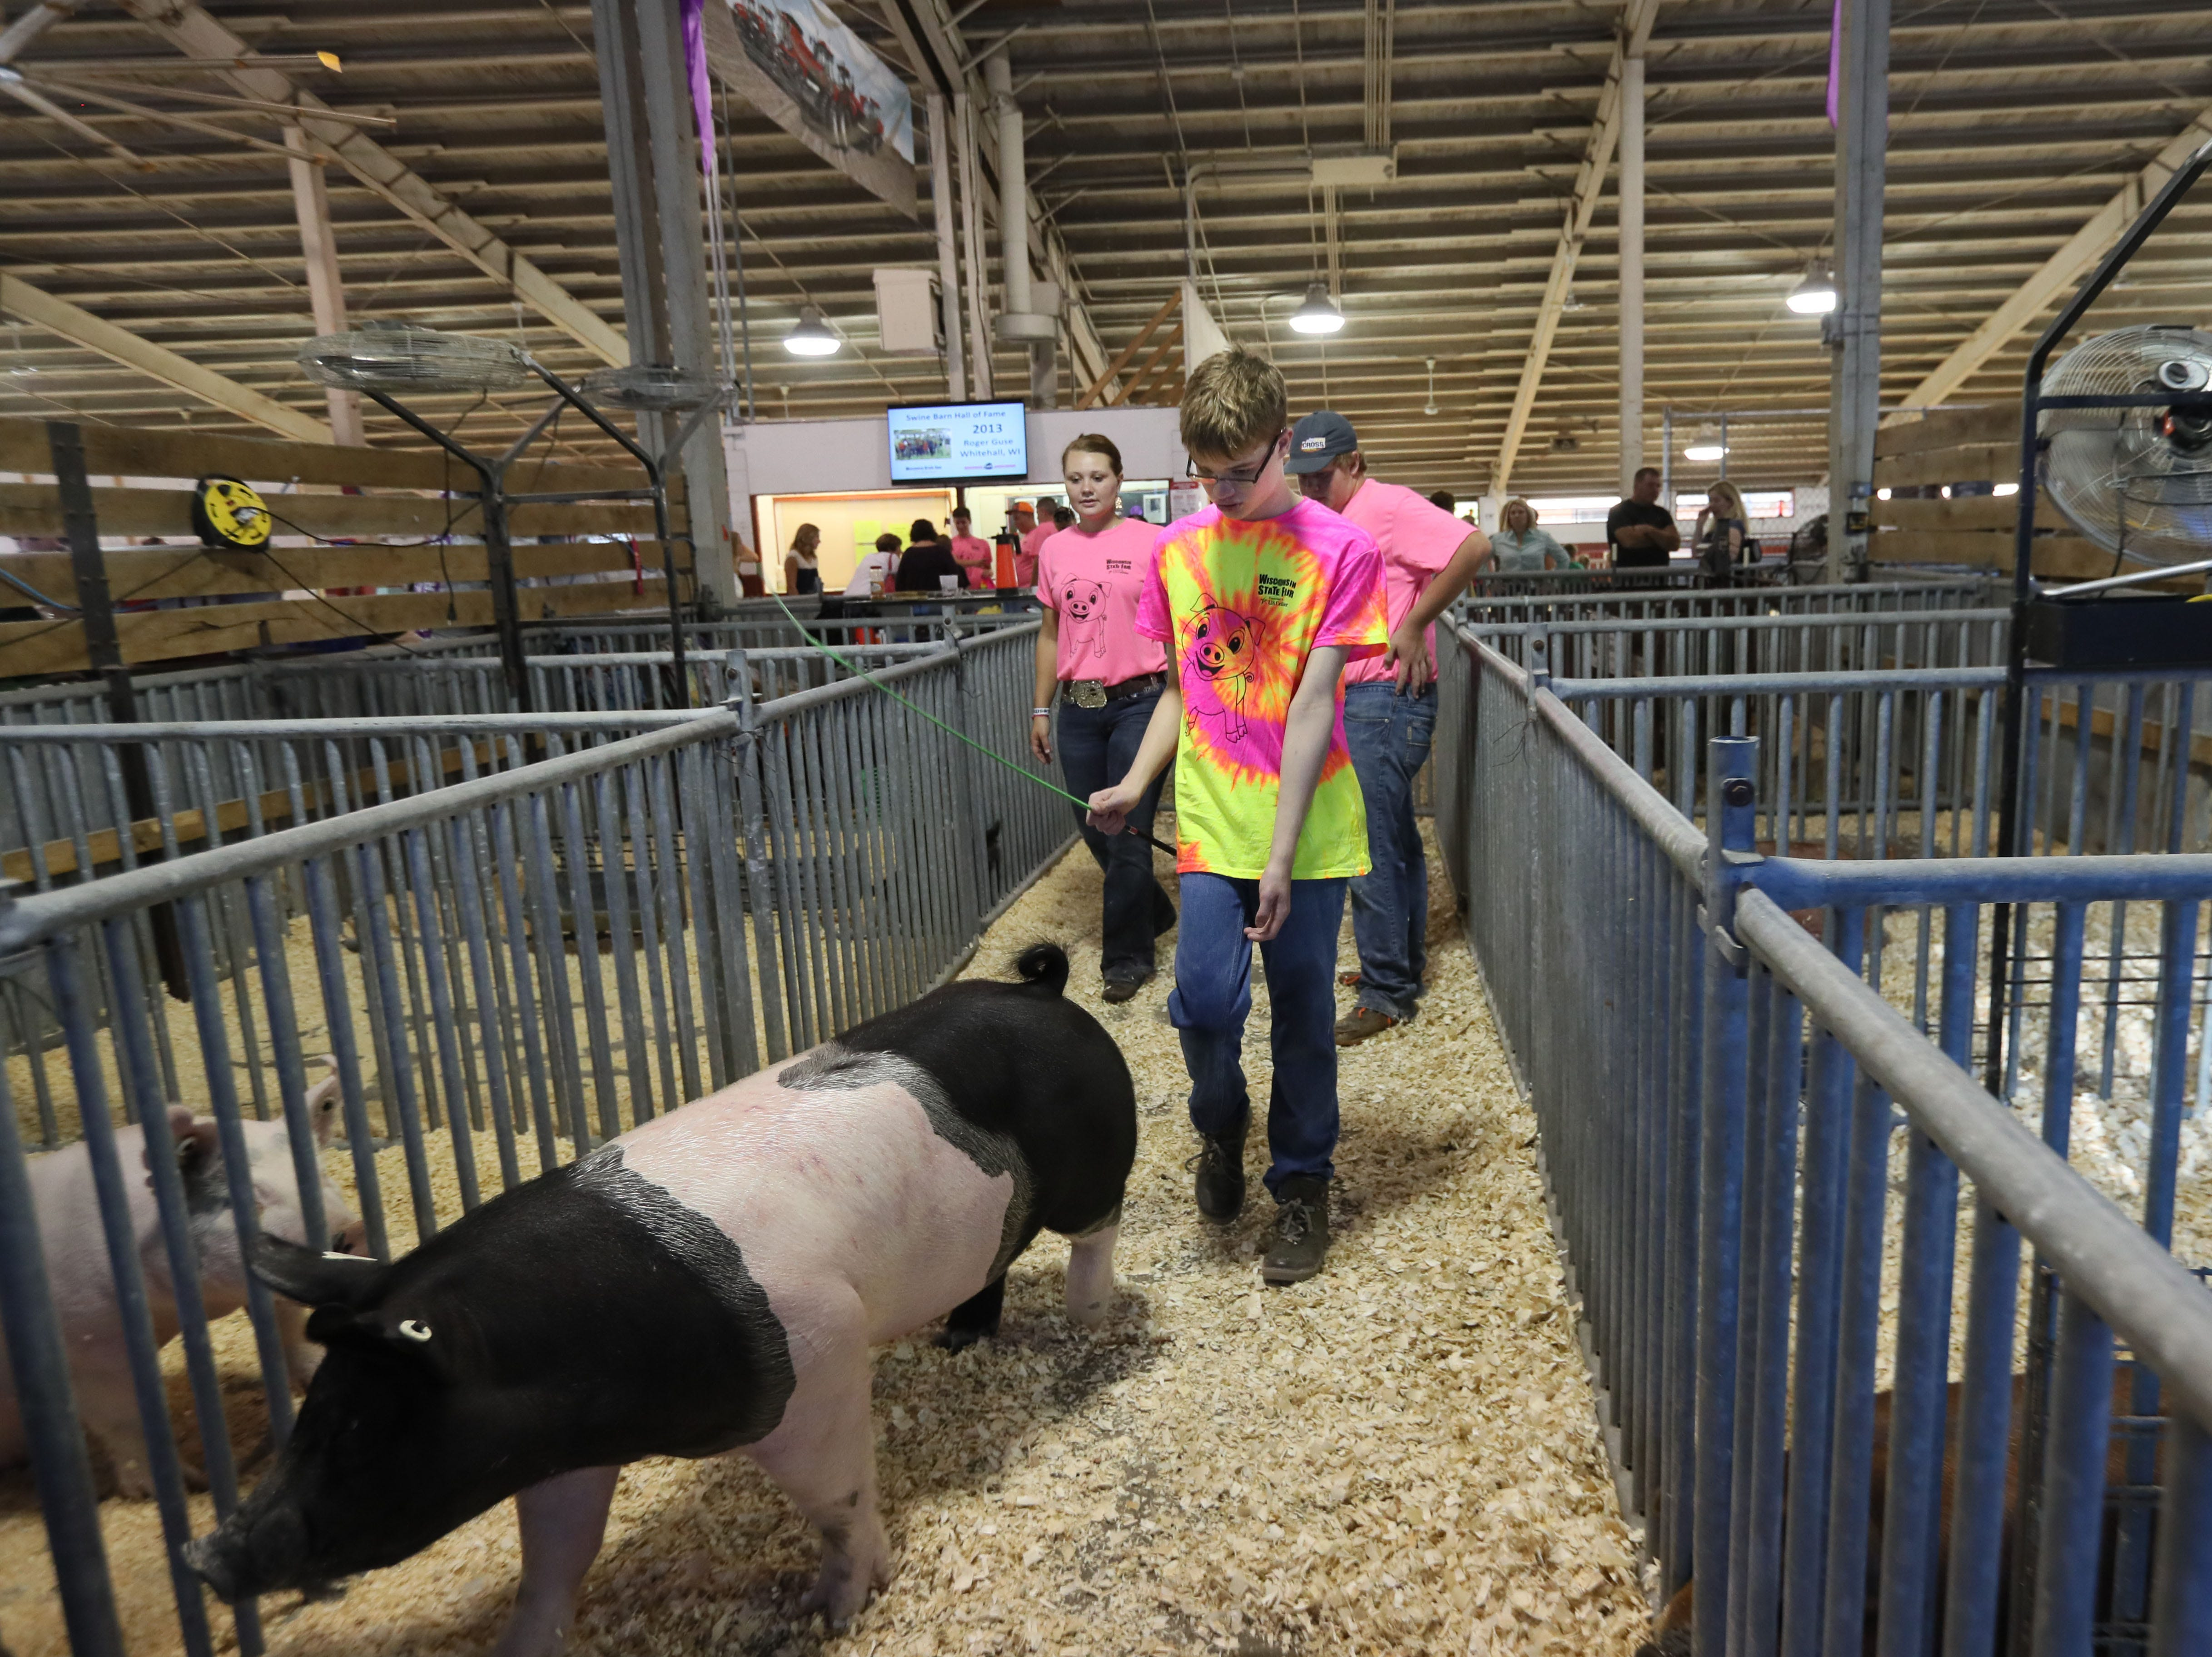 Braeden Allen, 15, of Hales Corners gets tips on showing a pig named Boots from his mentors Caitlyn Wileman (rear left), 20, of Janesville, and Tyler Cross (rear right), 16, of Poynette (rear right), at Wisconsin State Fair.